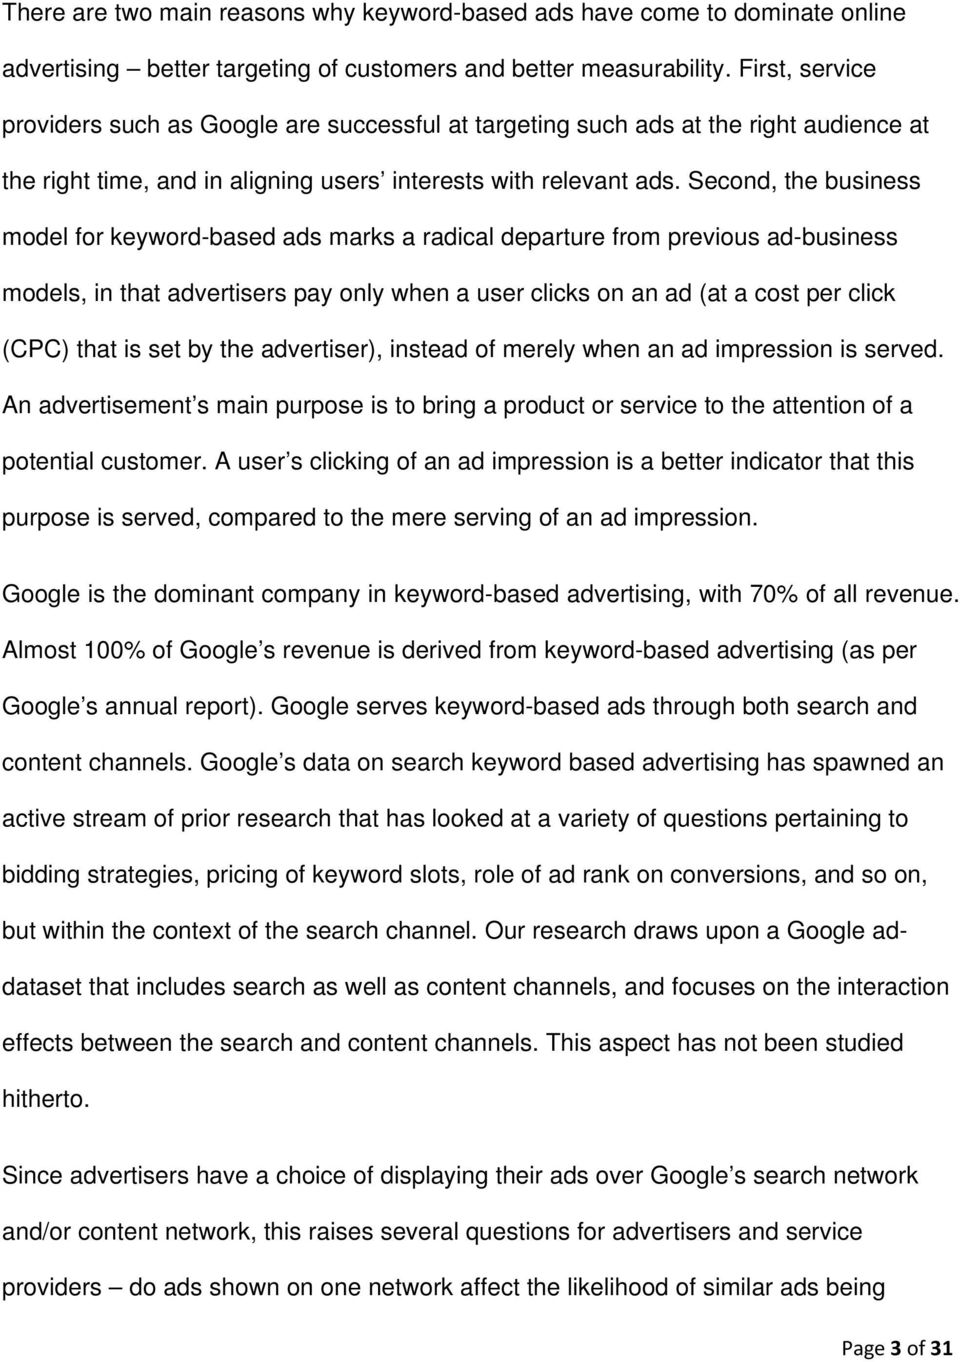 Second, the business model for keyword-based ads marks a radical departure from previous ad-business models, in that advertisers pay only when a user clicks on an ad (at a cost per click (CPC) that